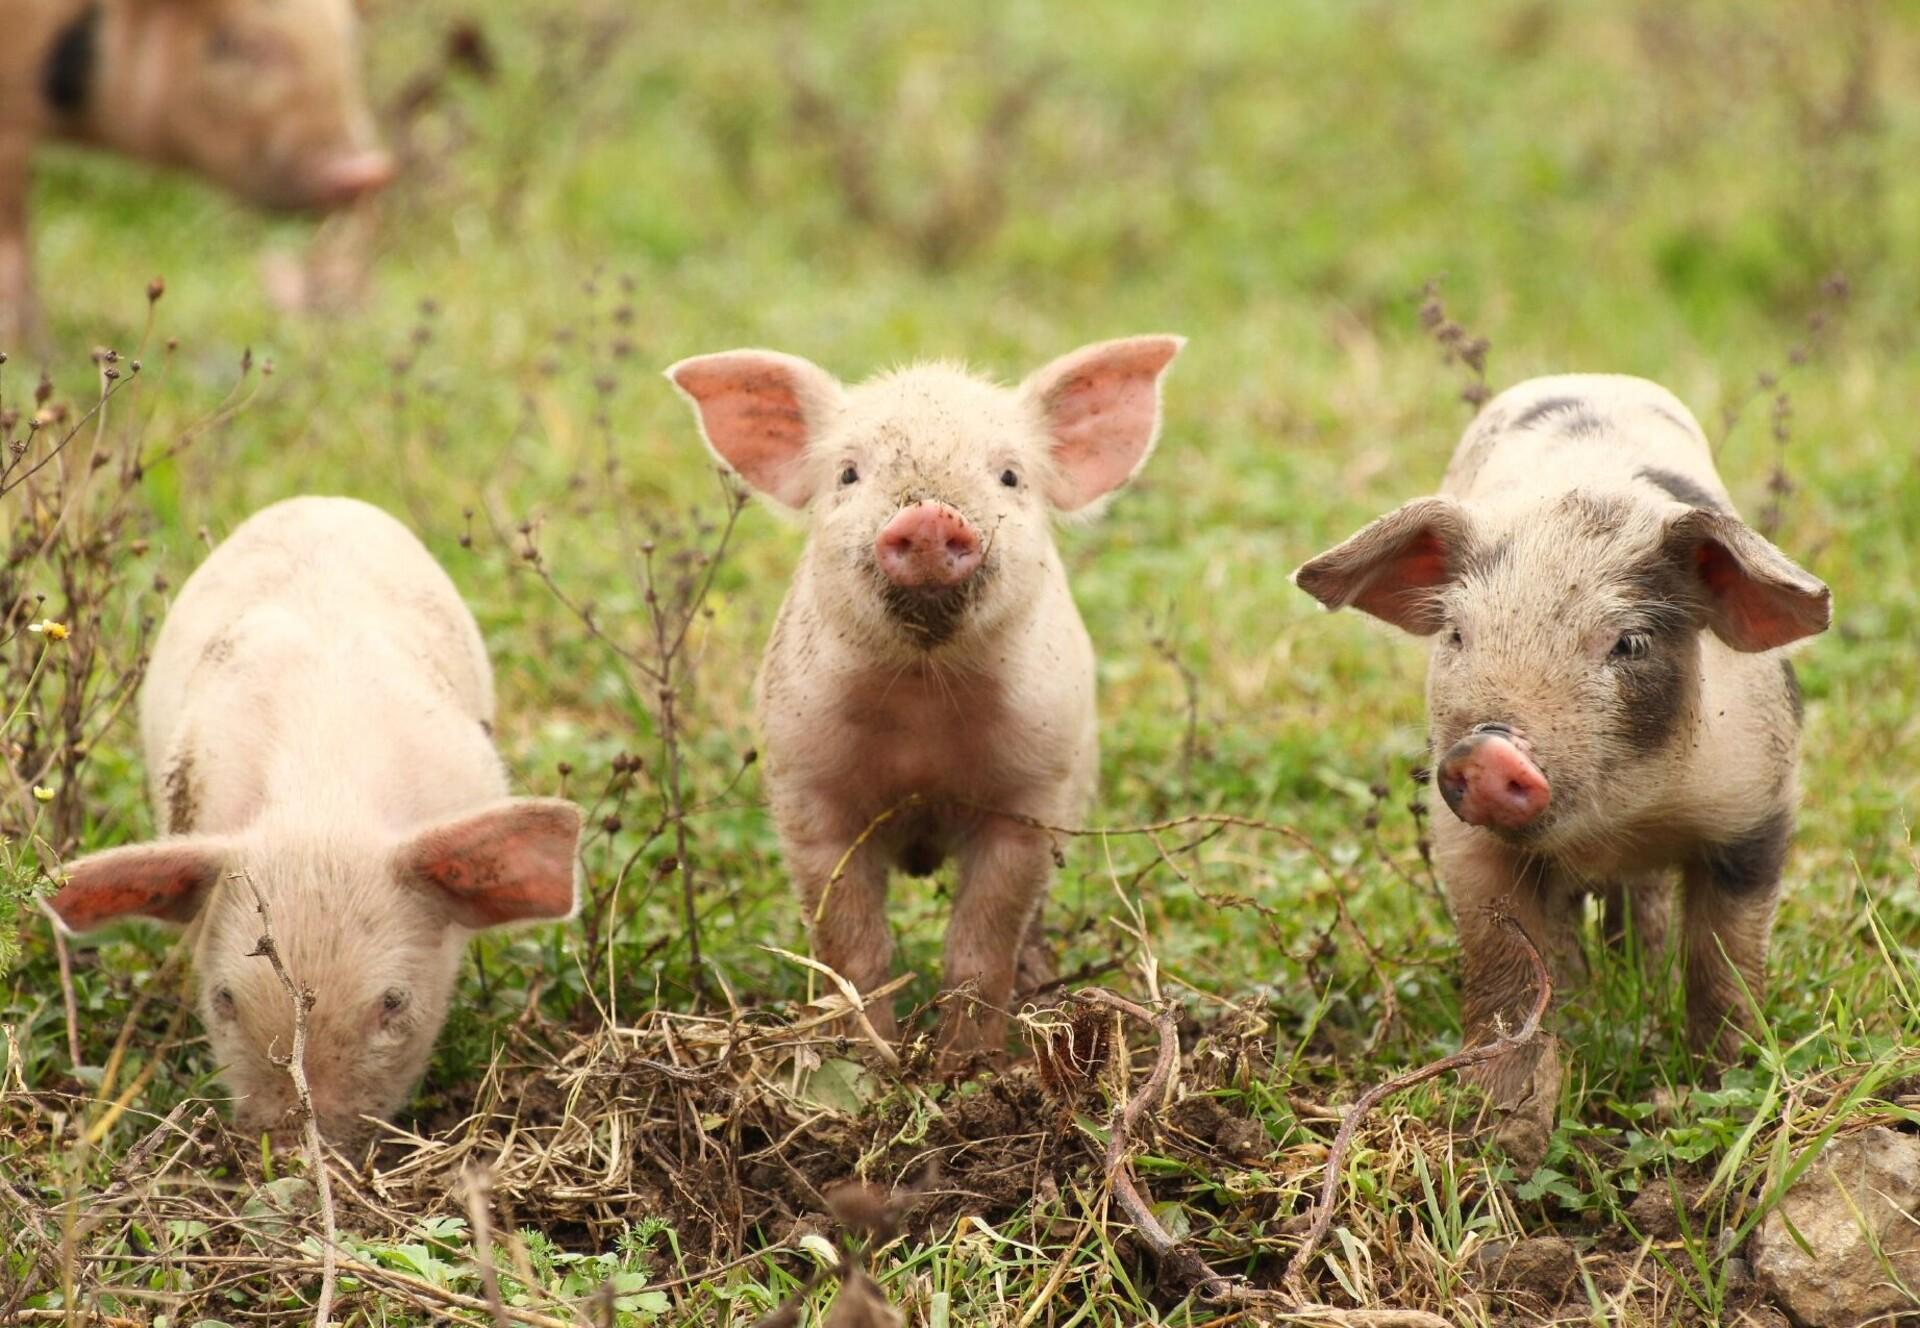 10 Facts About Pigs Farm Animals Topics Campaigns Topics Four Paws Us